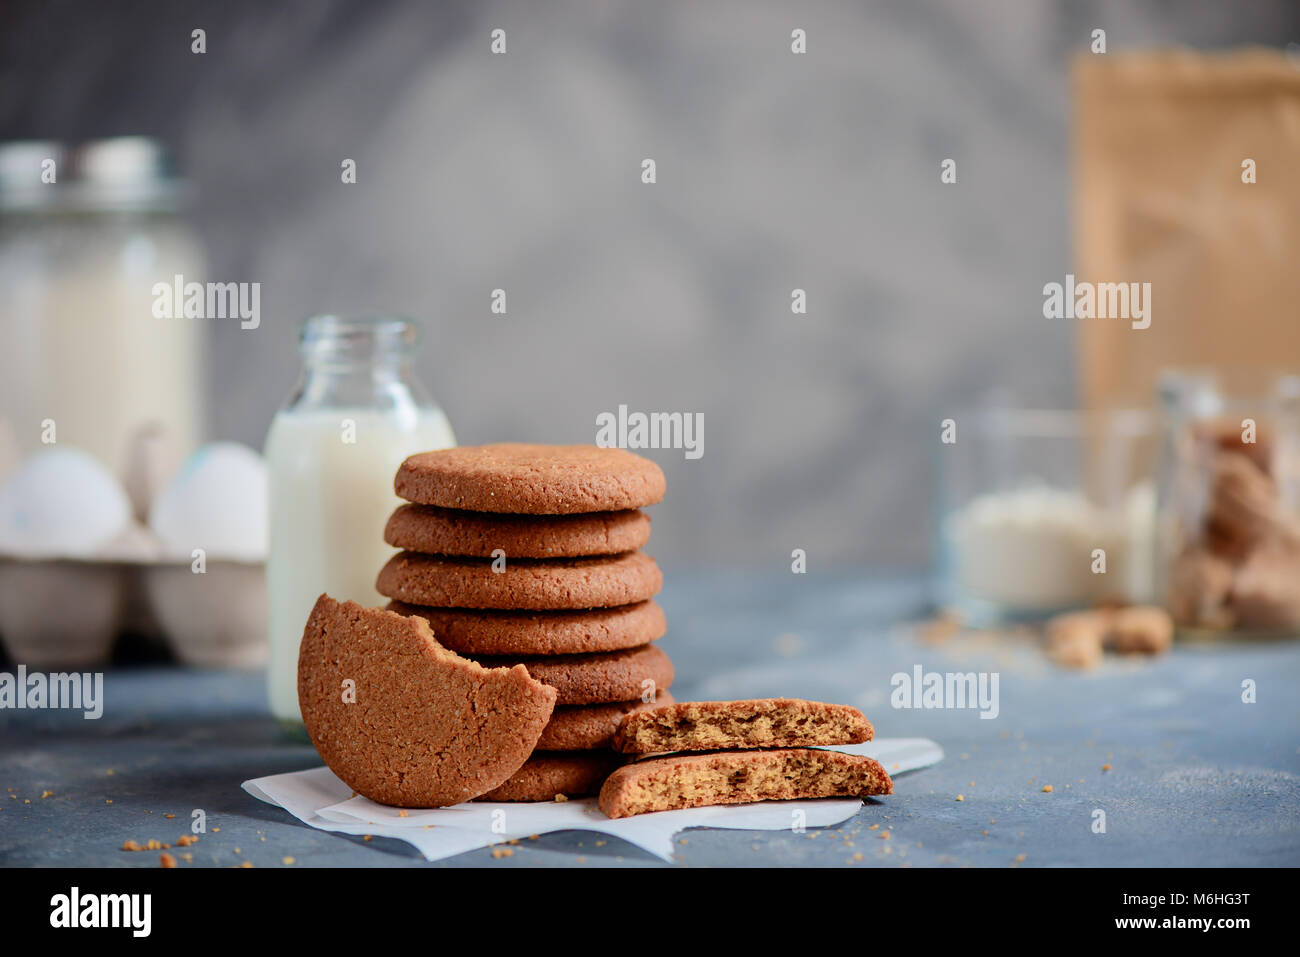 Stack of sugar buckwheat cookies on a stone background with baking ingredients out of focus. Cooking concept in - Stock Image